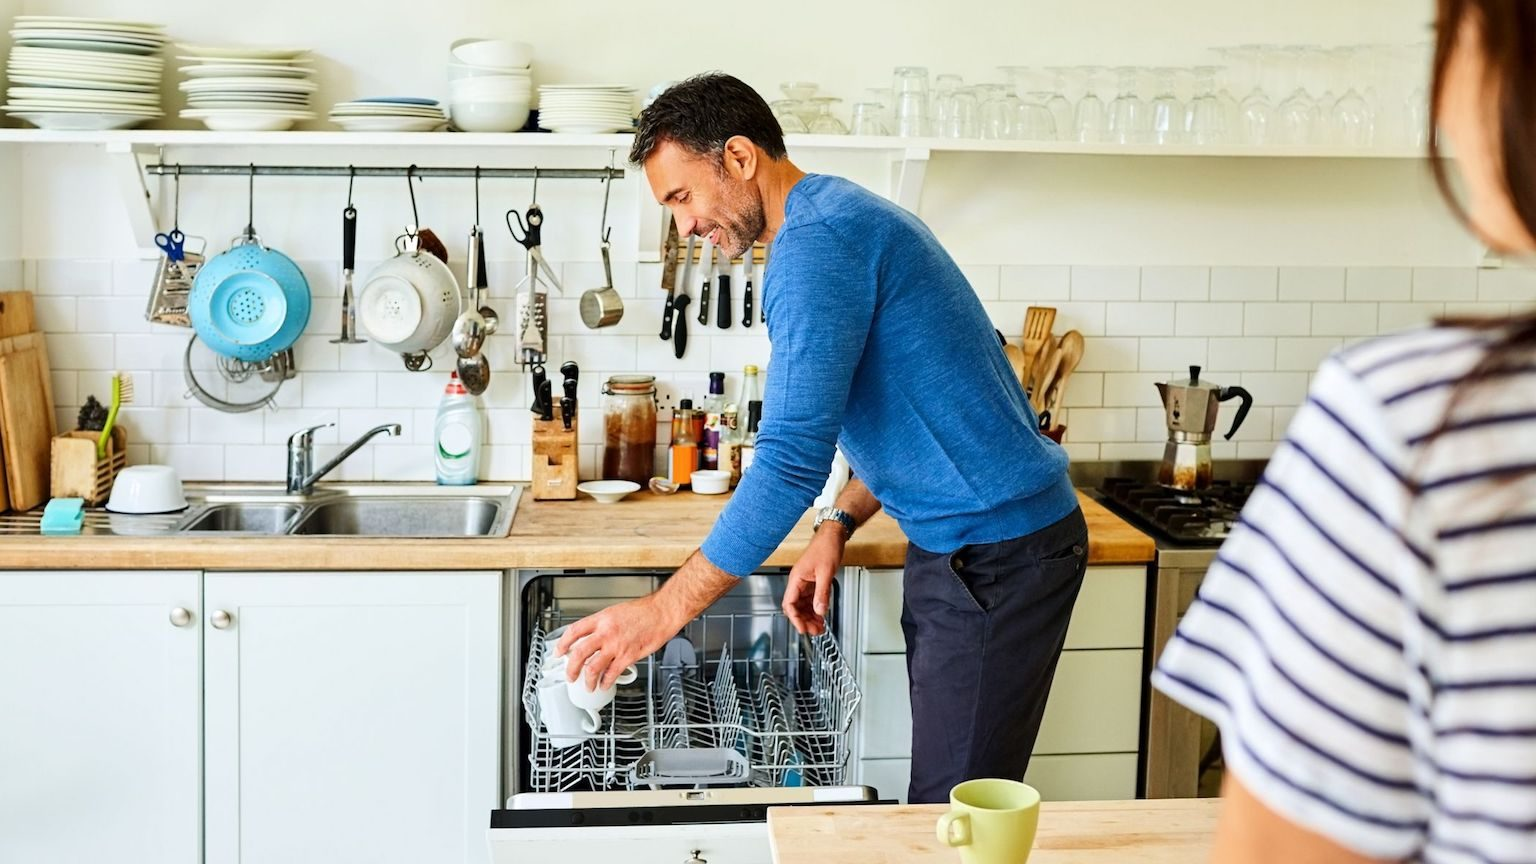 A man loading a dishwasher in his kitchen.